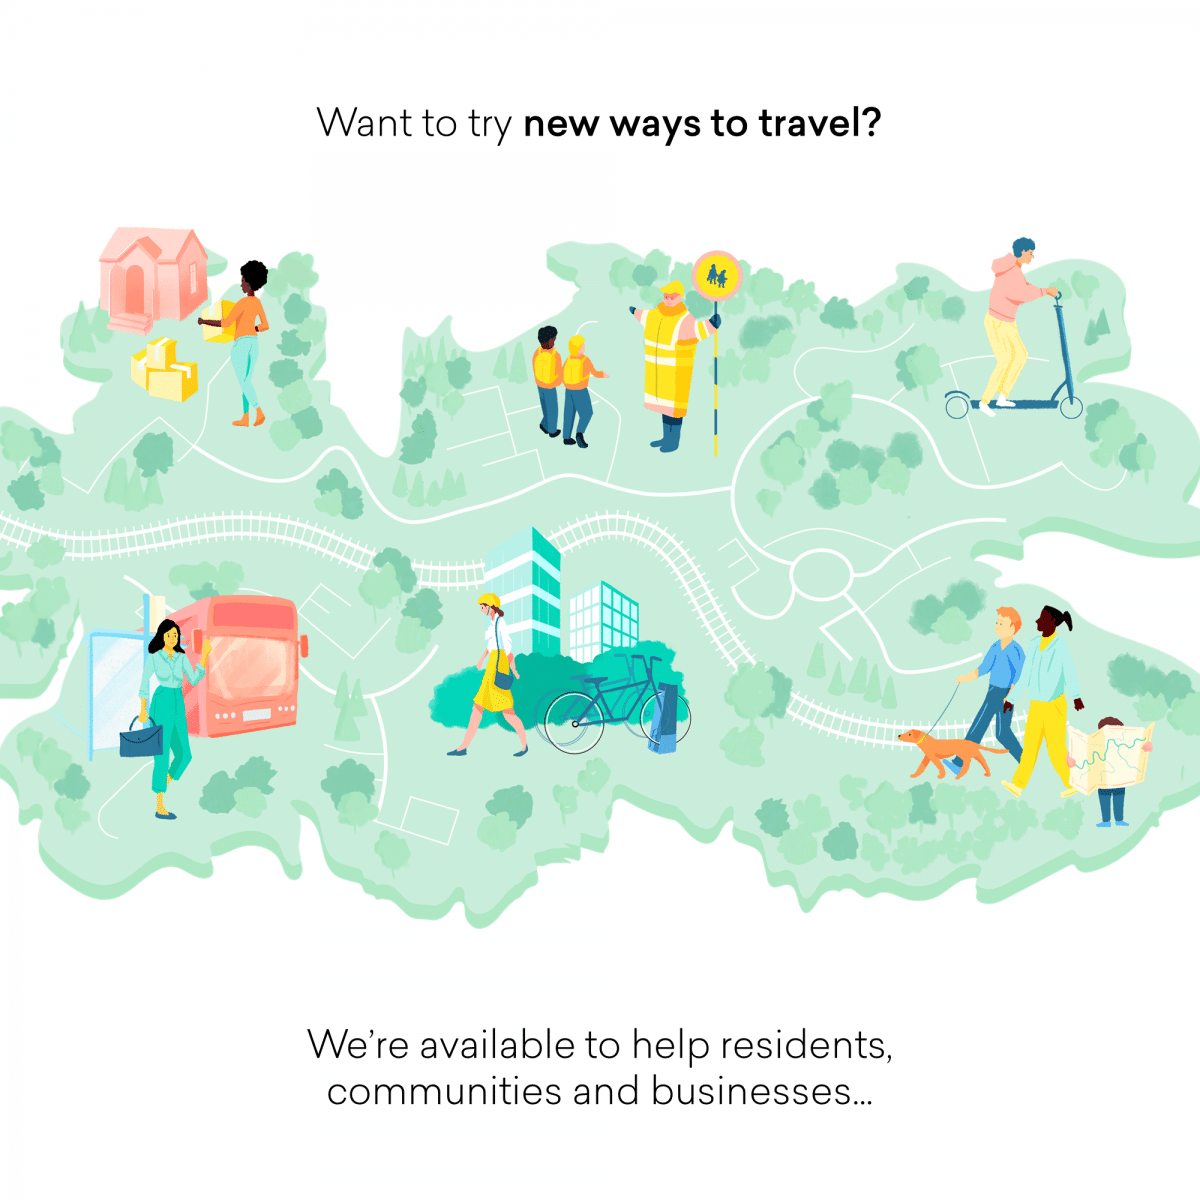 Want to try new ways to travel? We're available to help residents, communities and businesses... Click here to see all our offers on our engagement map.